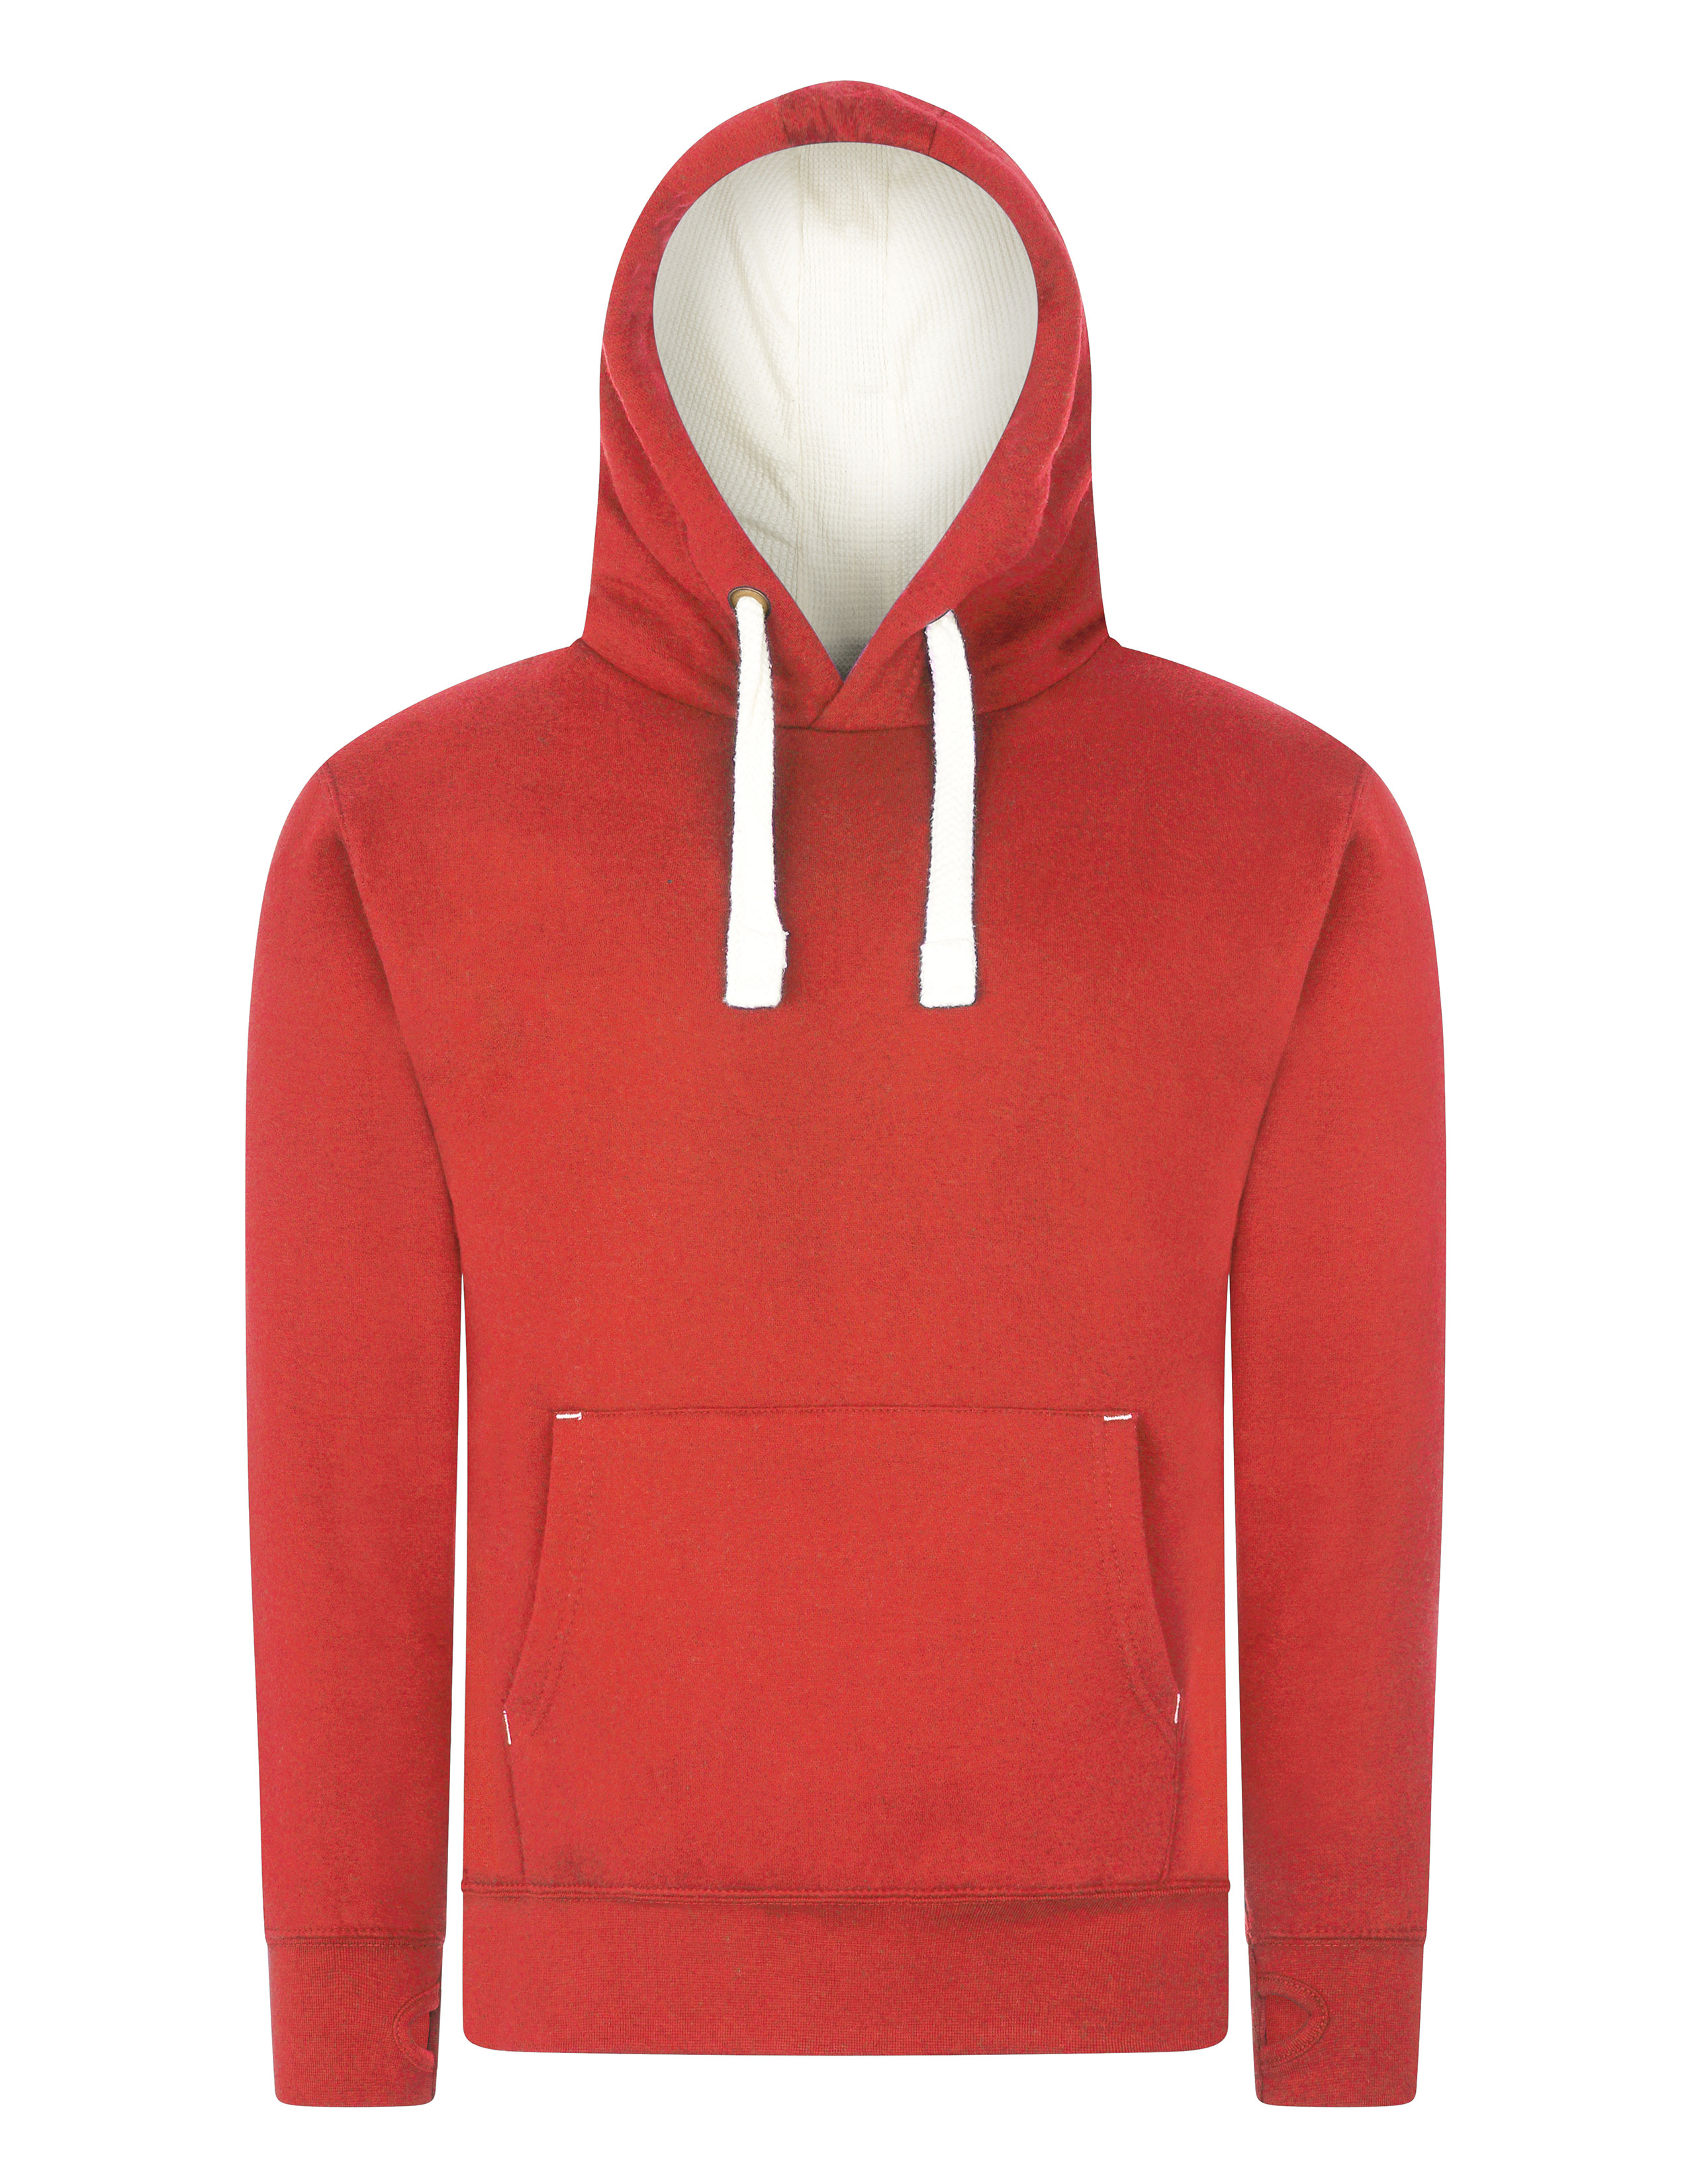 Advance Apparel AA113 Super Soft Peach Finish Pull Over Hood